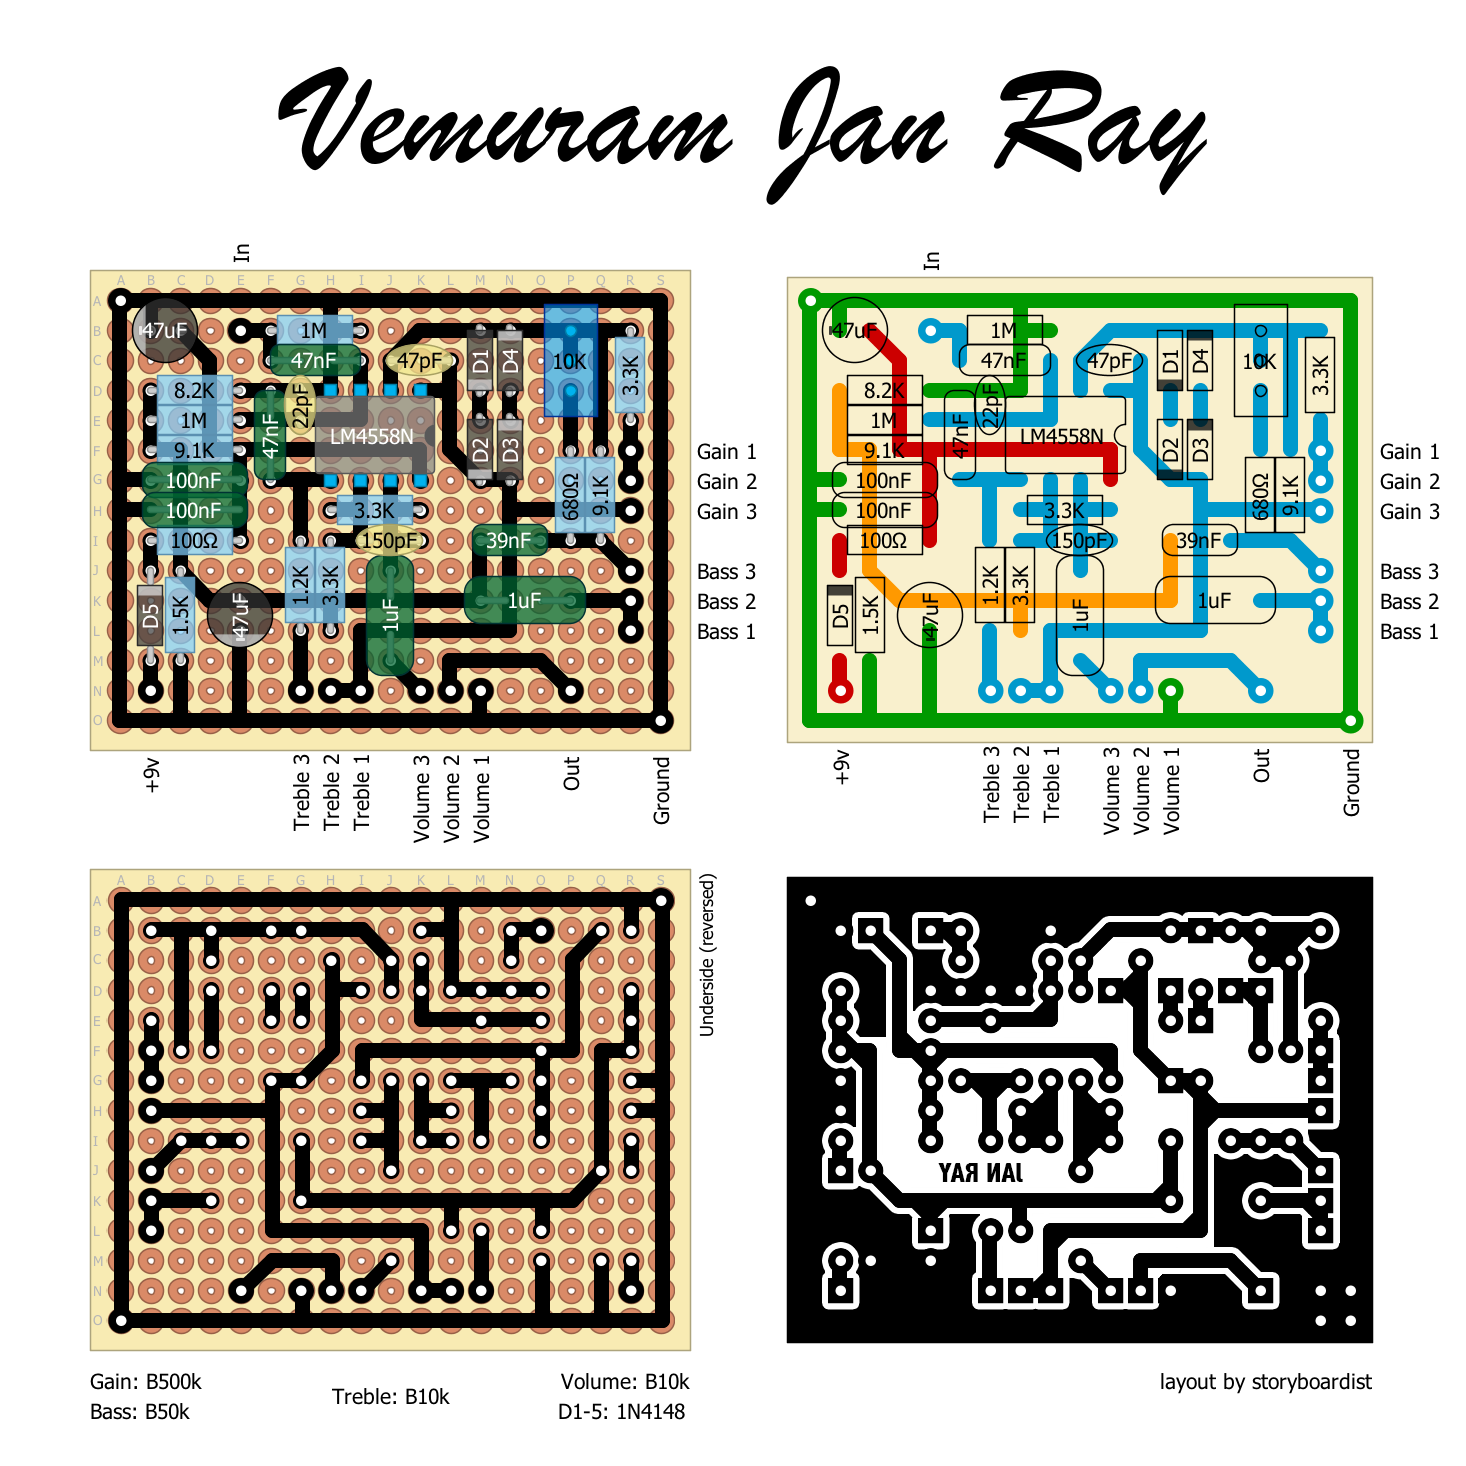 Perf And Pcb Effects Layouts  Vemuram Jan Ray